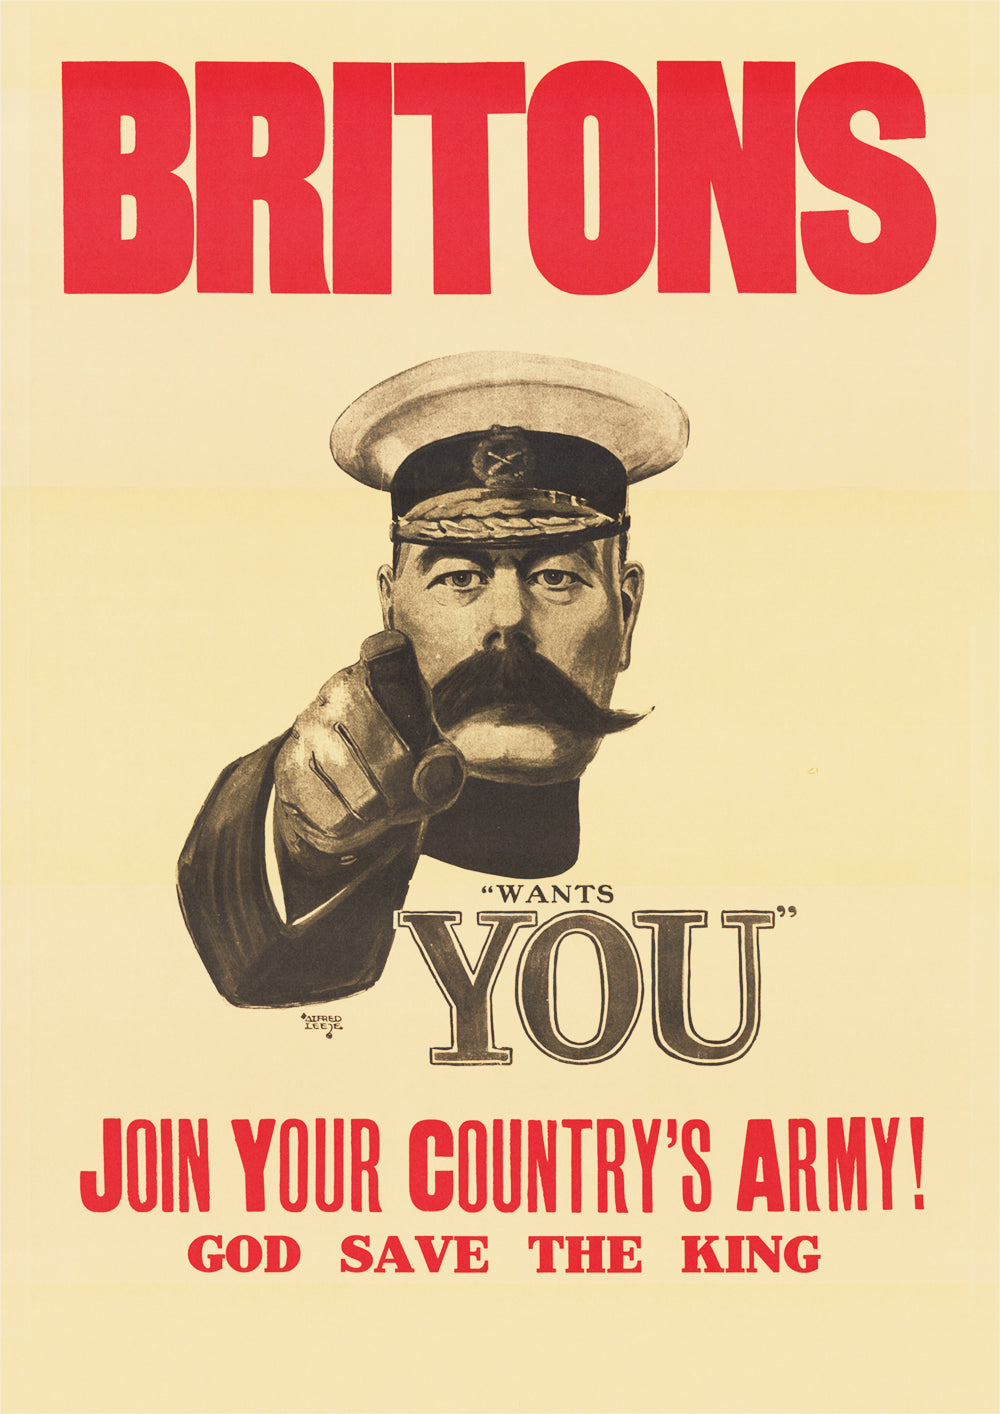 Britons: Lord Kitchener Wants You – British World War One poster